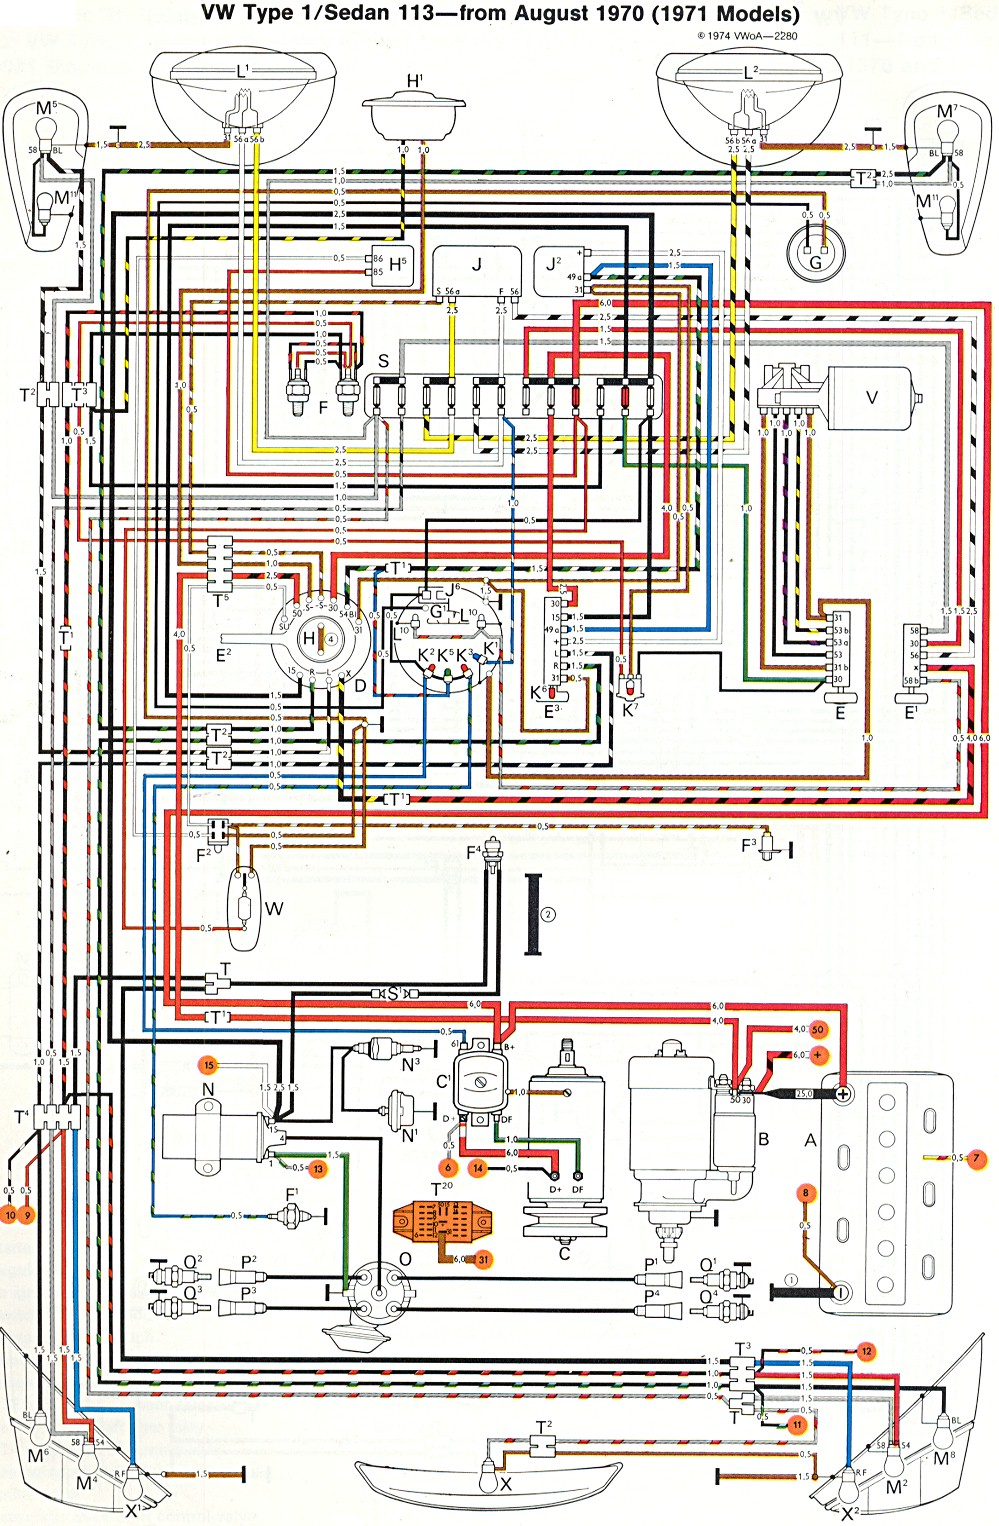 1973 vw super beetle relay wiring diagram 1973 vw super beetle 1971 vw super beetle wiring diagram 1971 automotive wiring